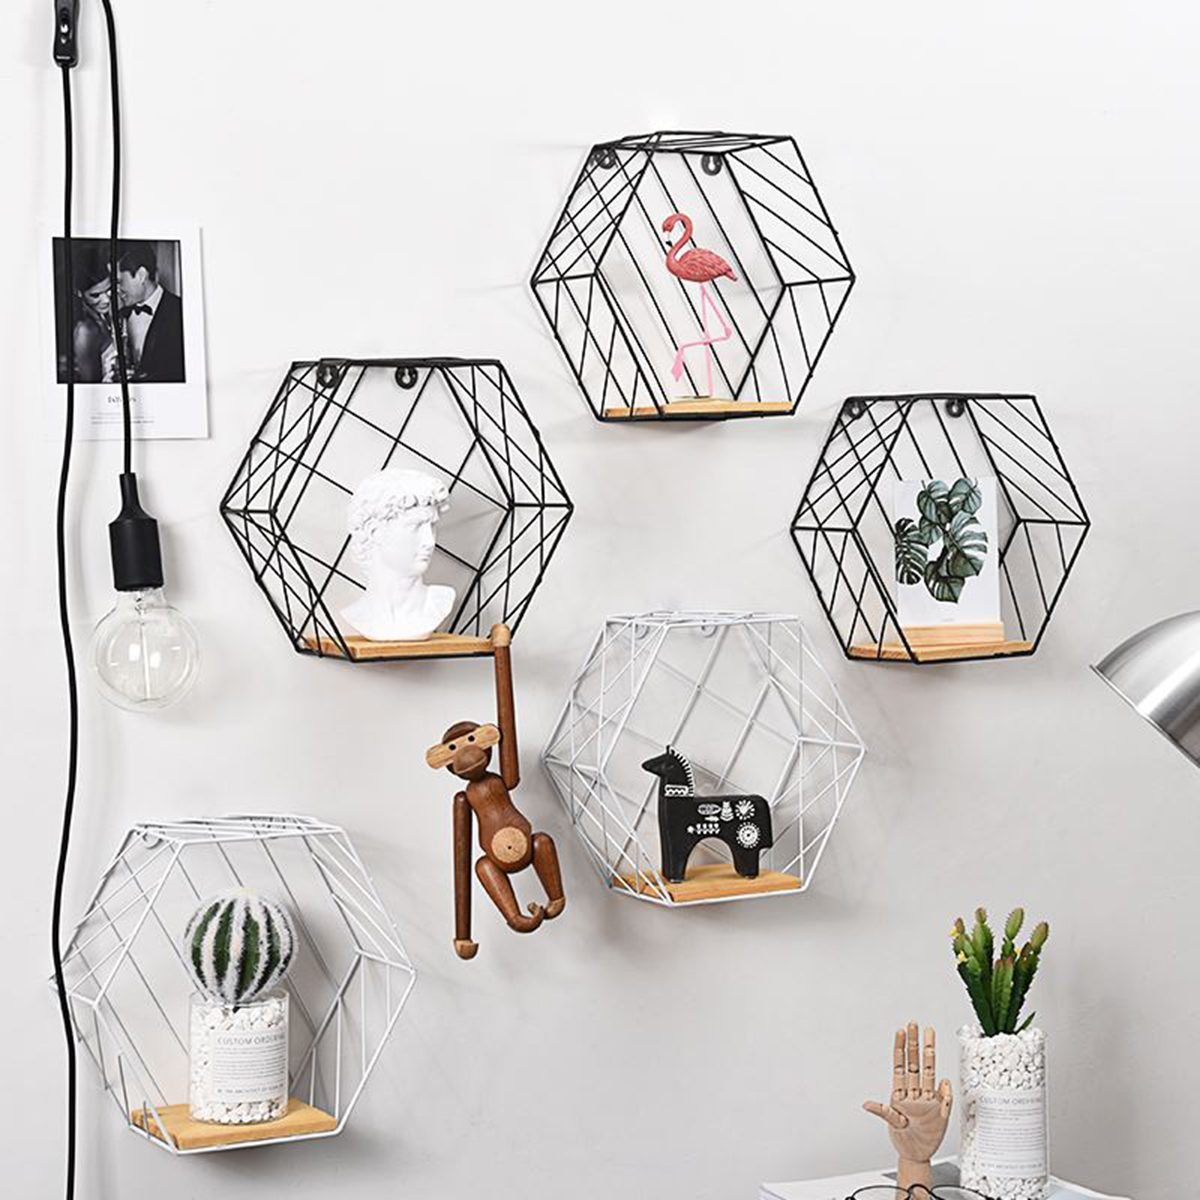 Nordic Modern Iron Hexagonal Grid Wall Shelf Combination Wall Hanging Figure Wall Decoration Storage Rack For Livingroom Bedroom